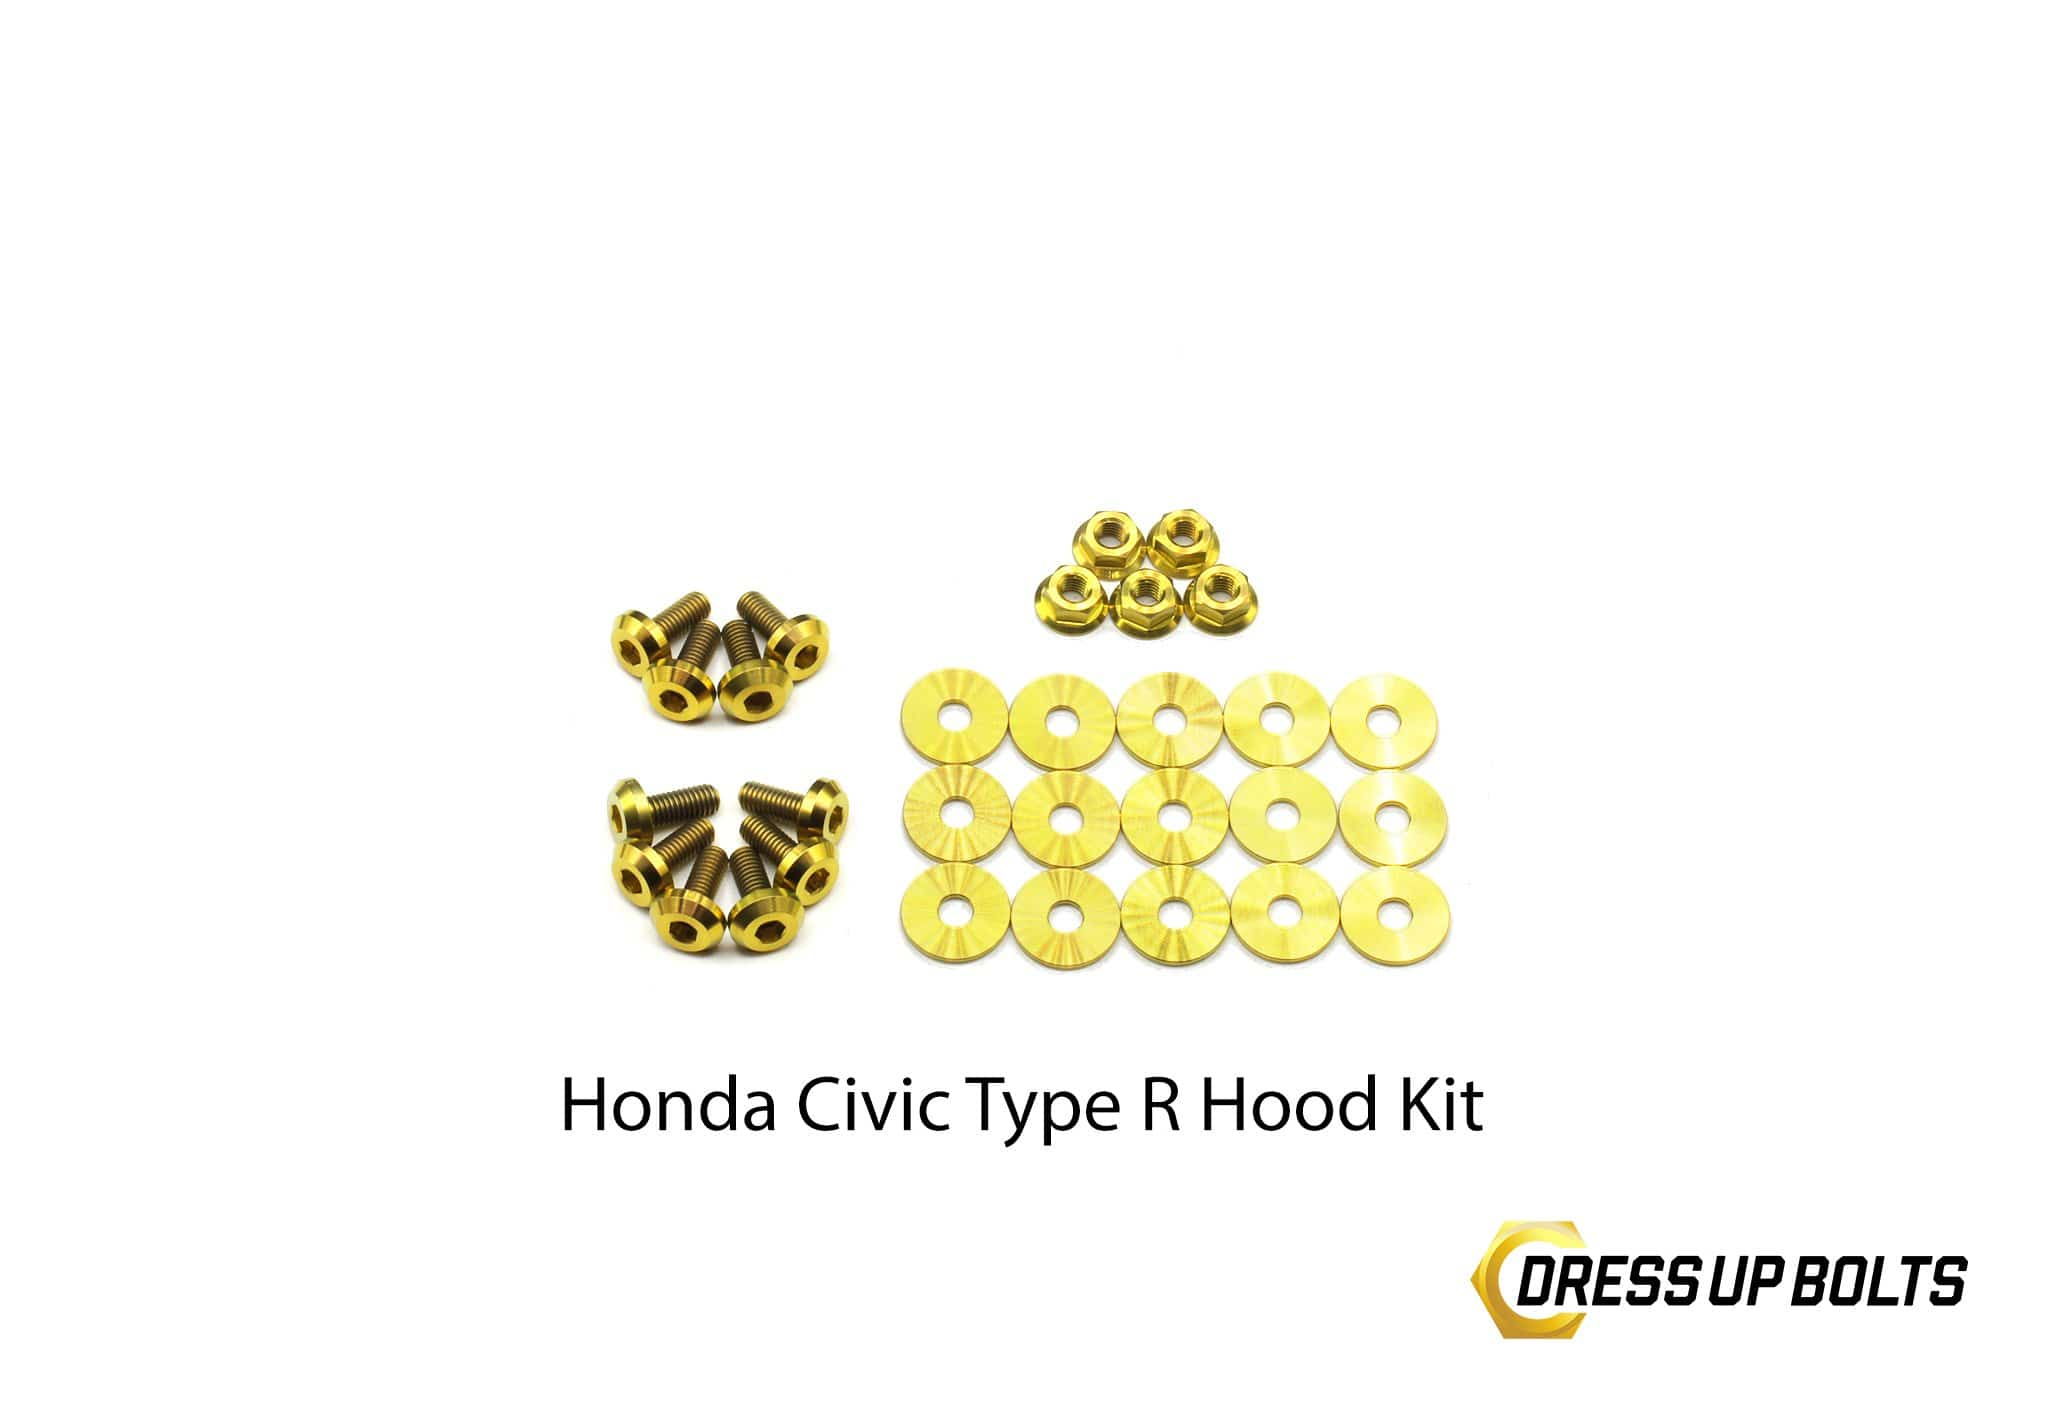 Honda Civic Type R Hood